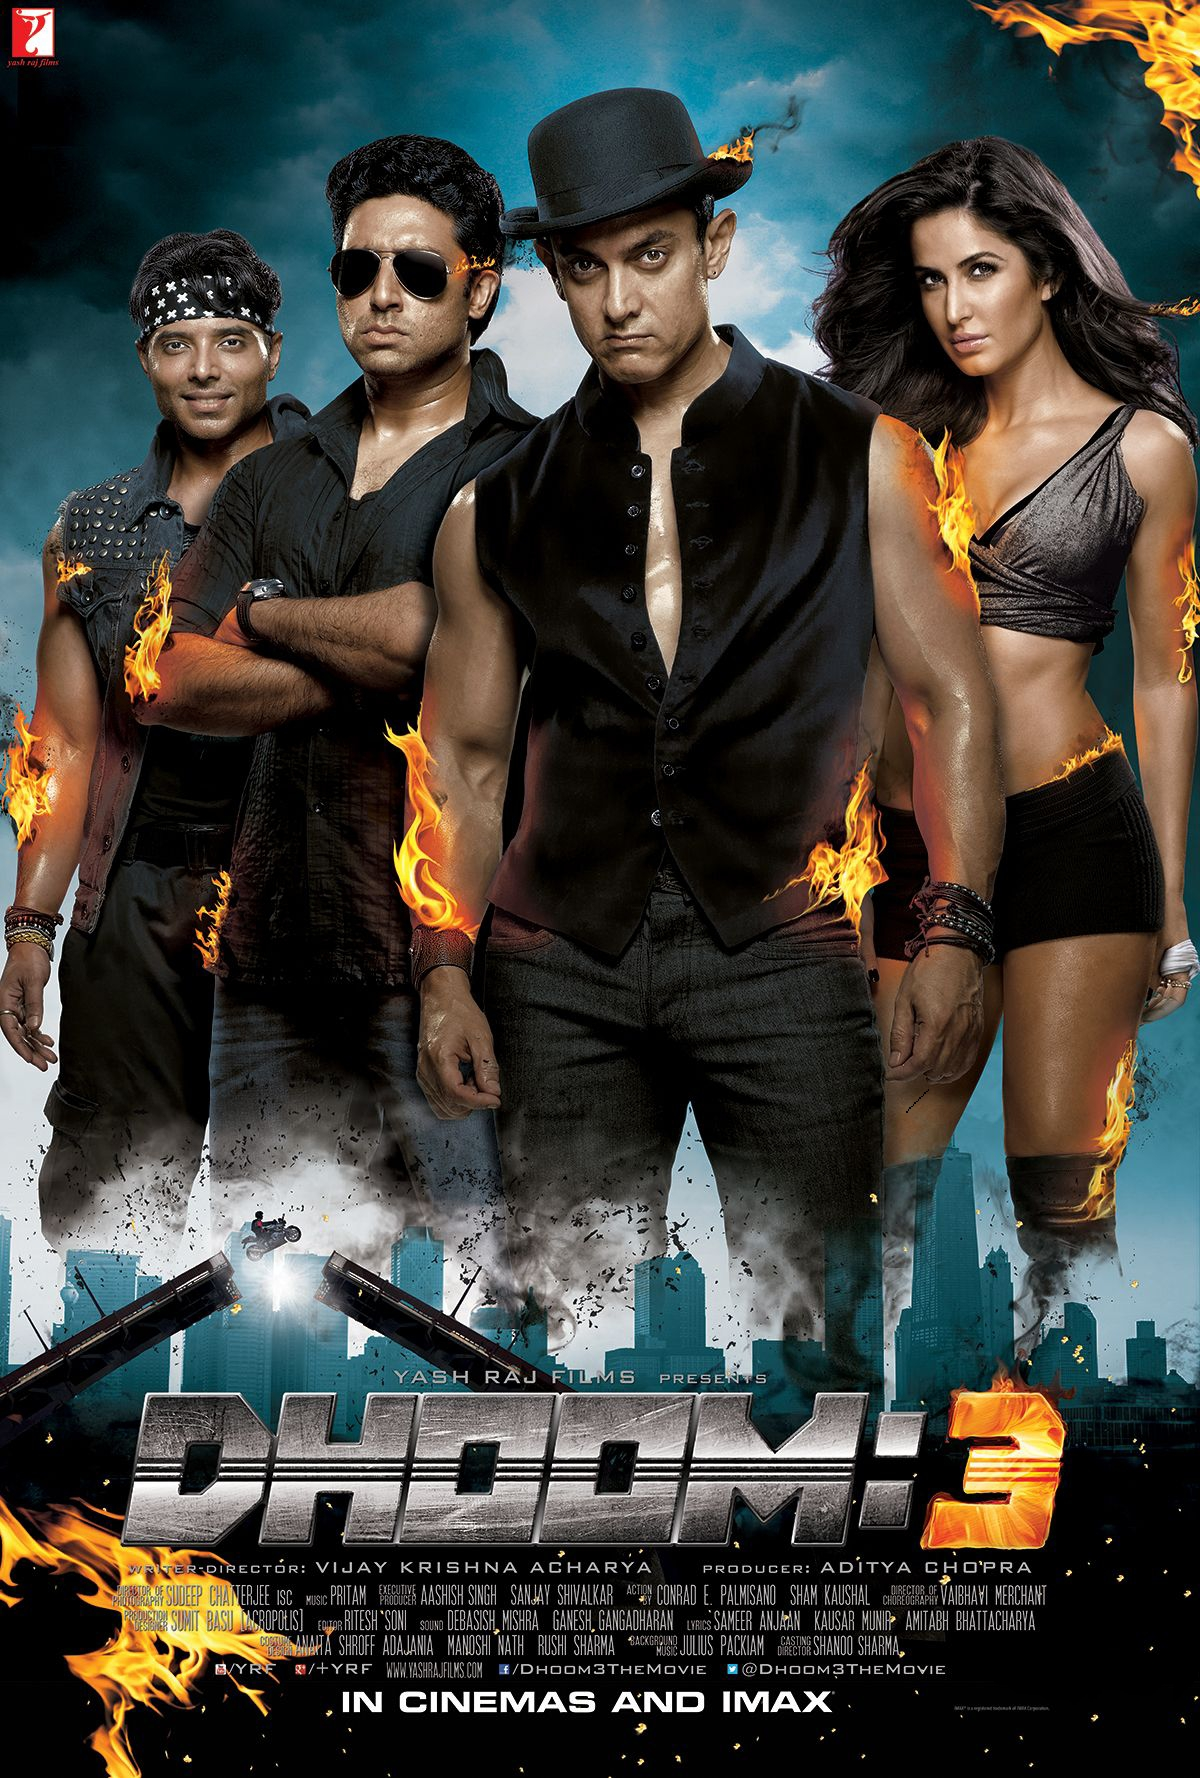 film dhoom 3 motarjam